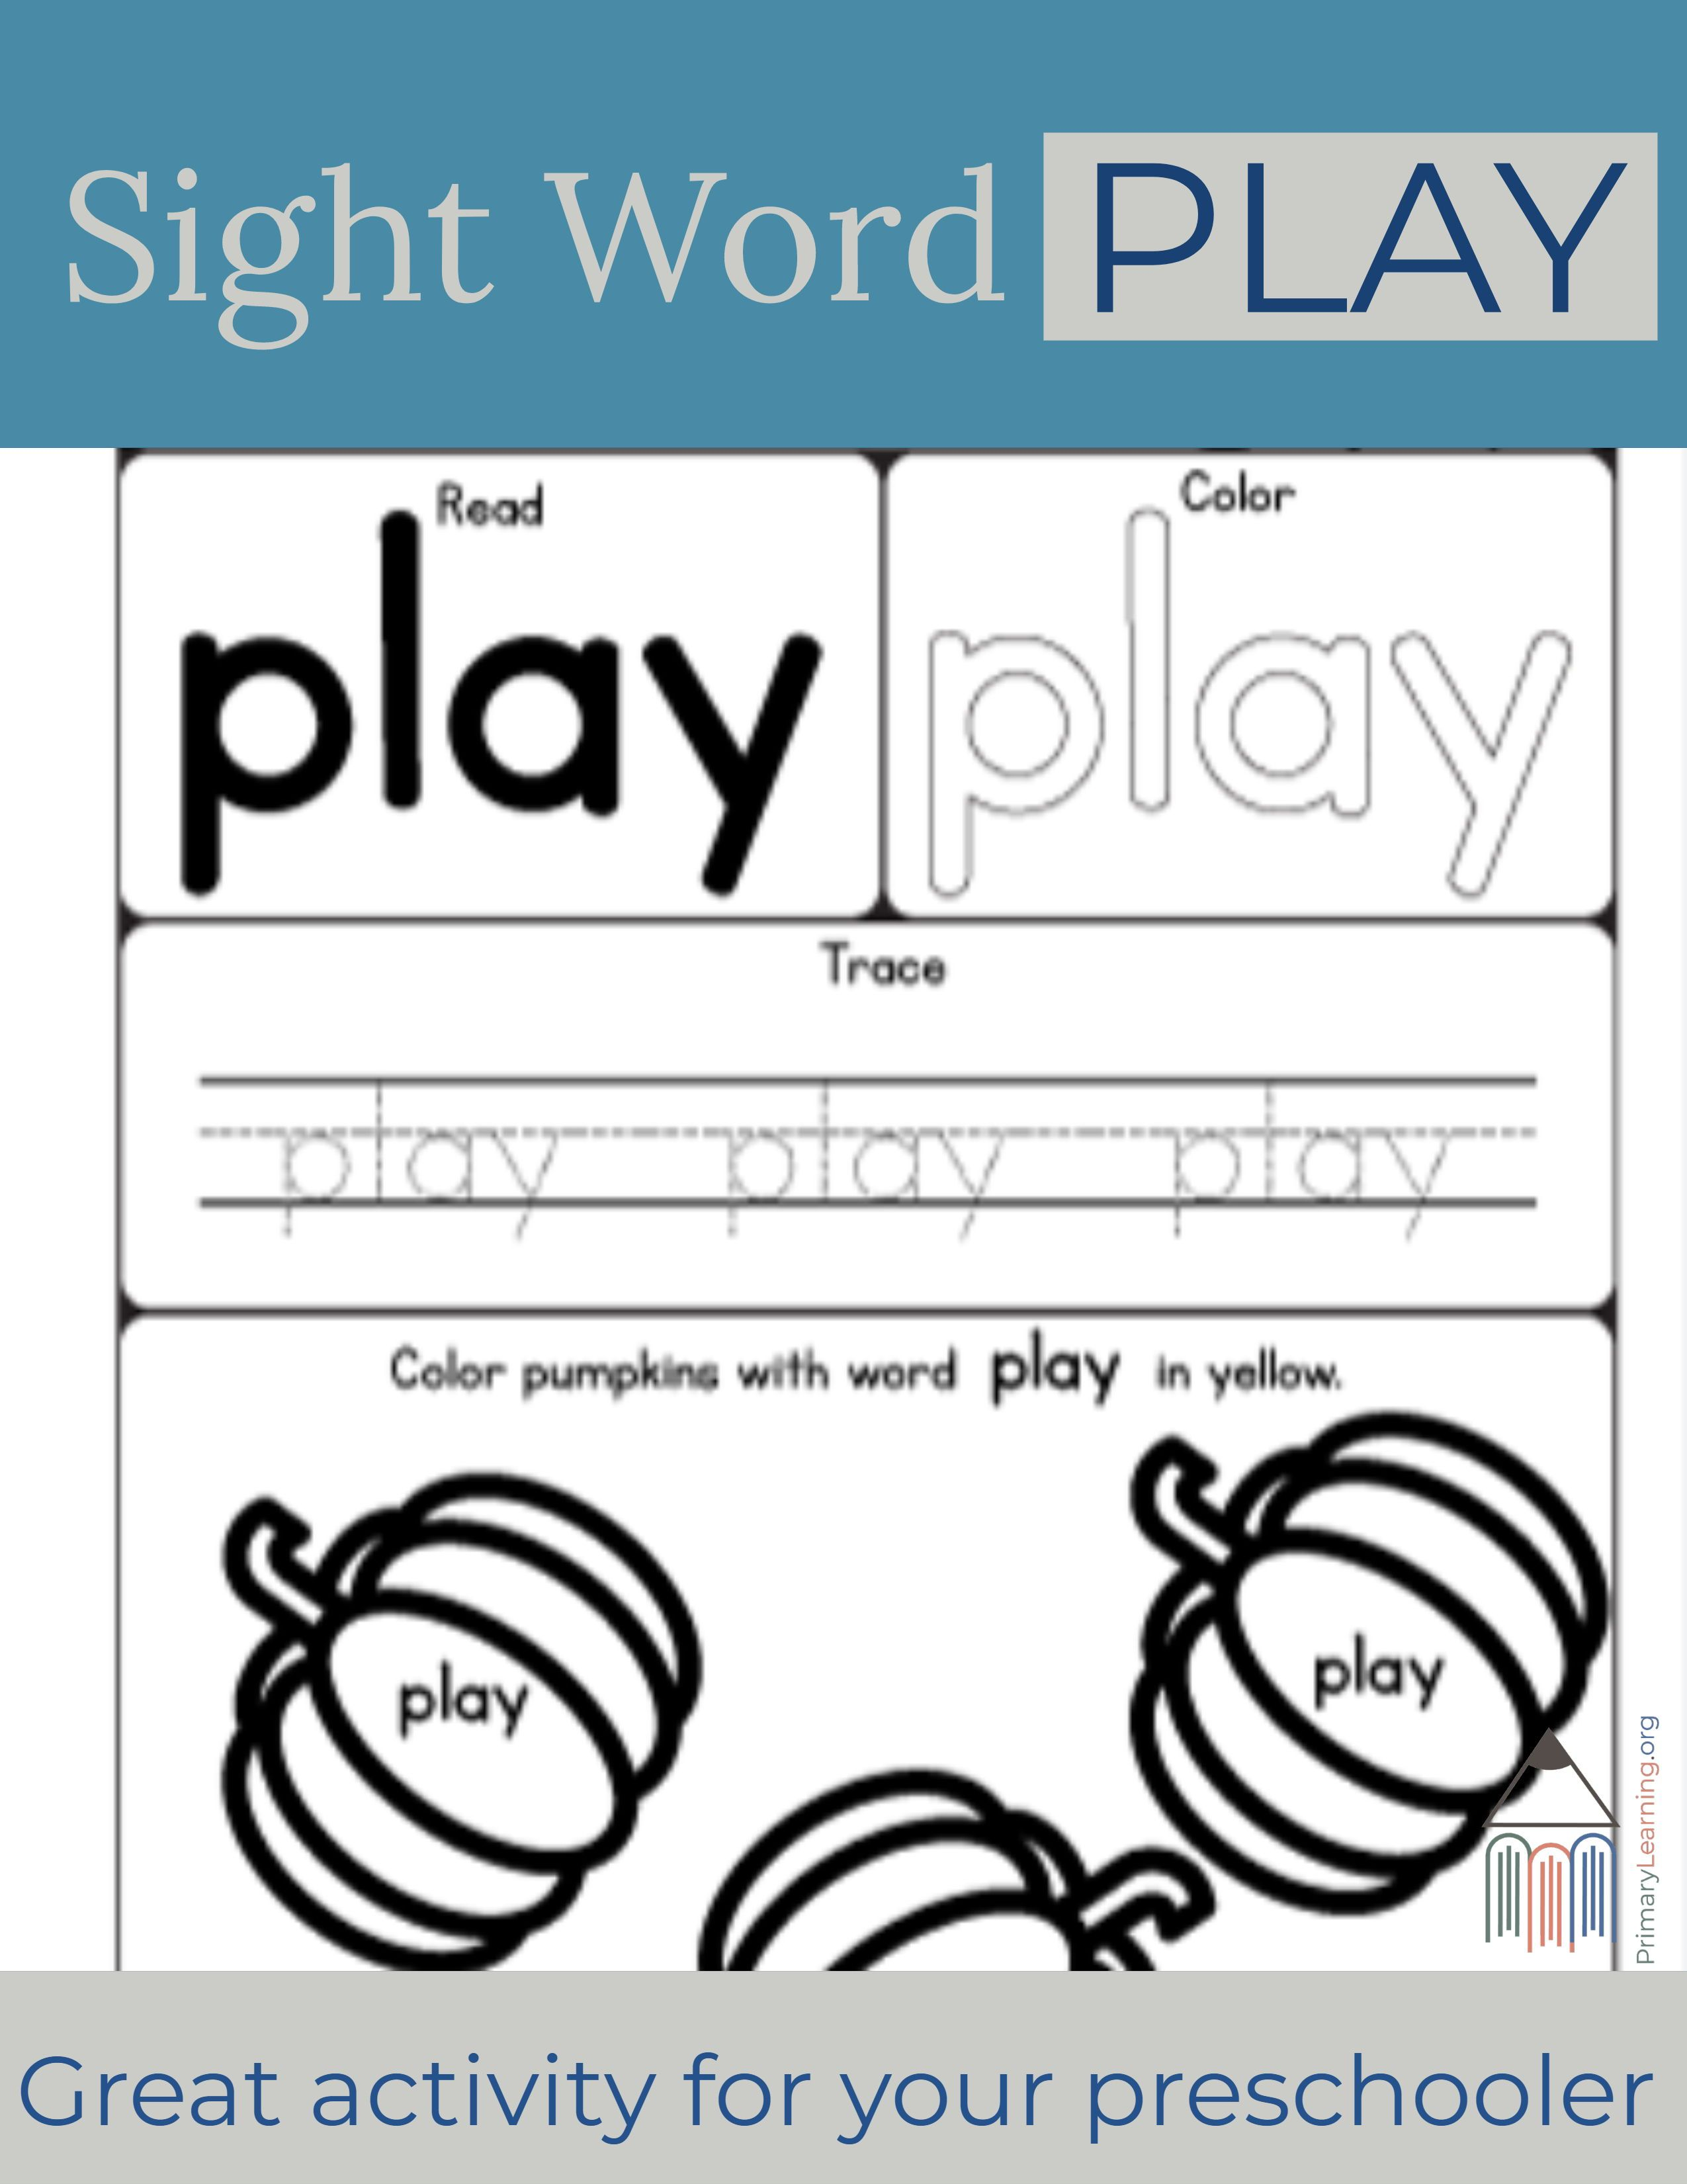 Sight Word Play Worksheet Primarylearning Org Sight Word Flashcards Sight Word Worksheets Pre Primer Words